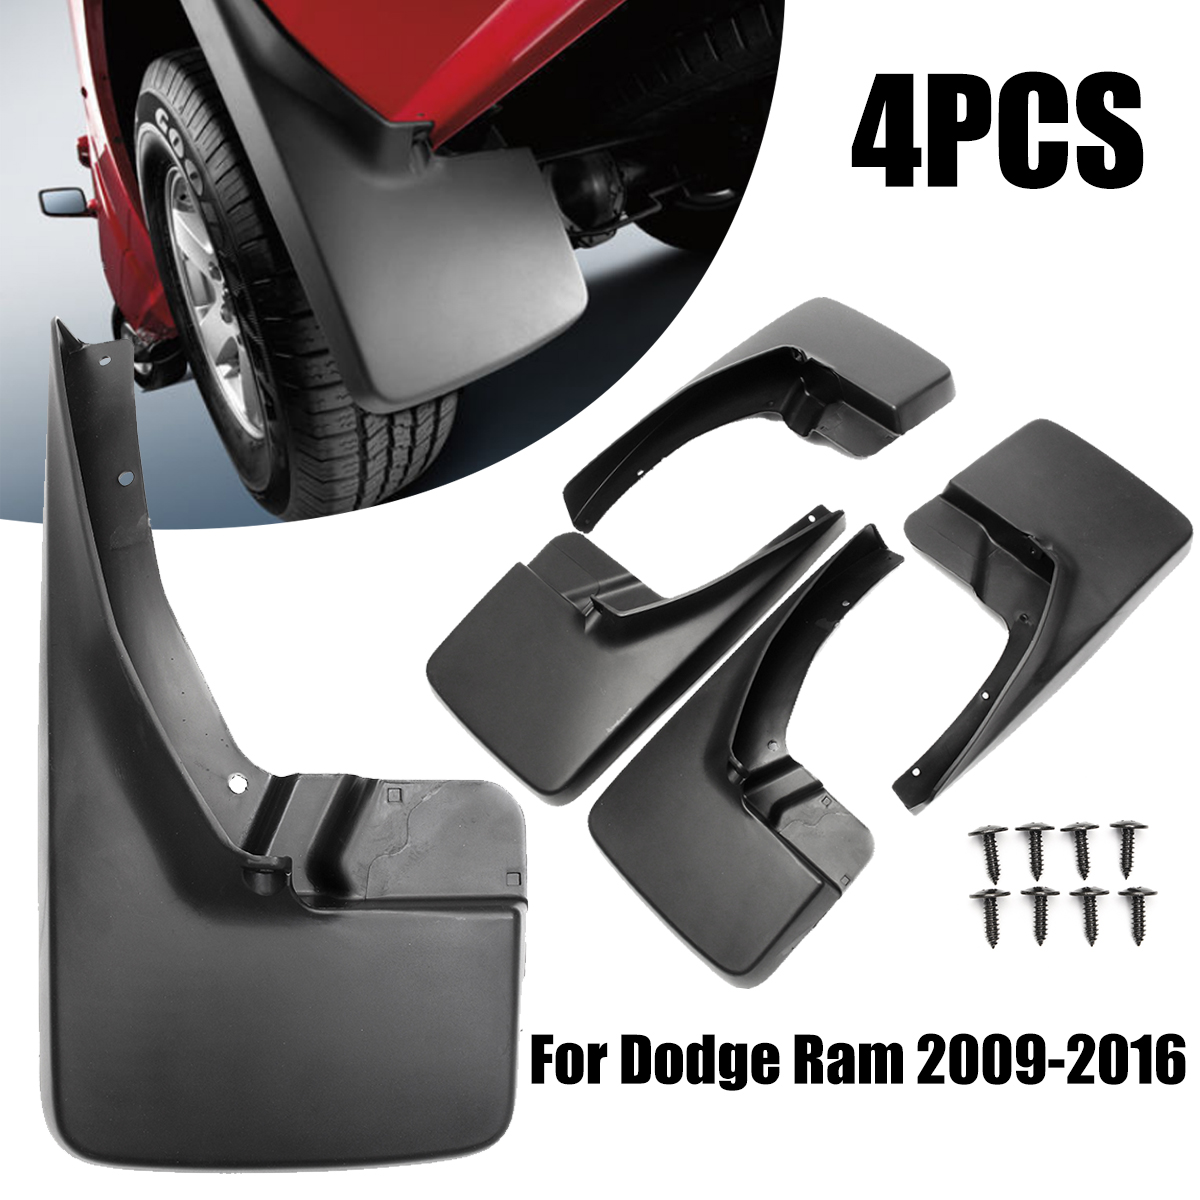 4Pcs Black Molded Splash Guards Mud Guard Flaps Front and Rear Protector Mudguards for Dodge Ram 1500 2009-2017 for ford explorer 2013 2018 plastic more fashion front rear mud guard mudguards splash flaps cover protector trim 4 piece